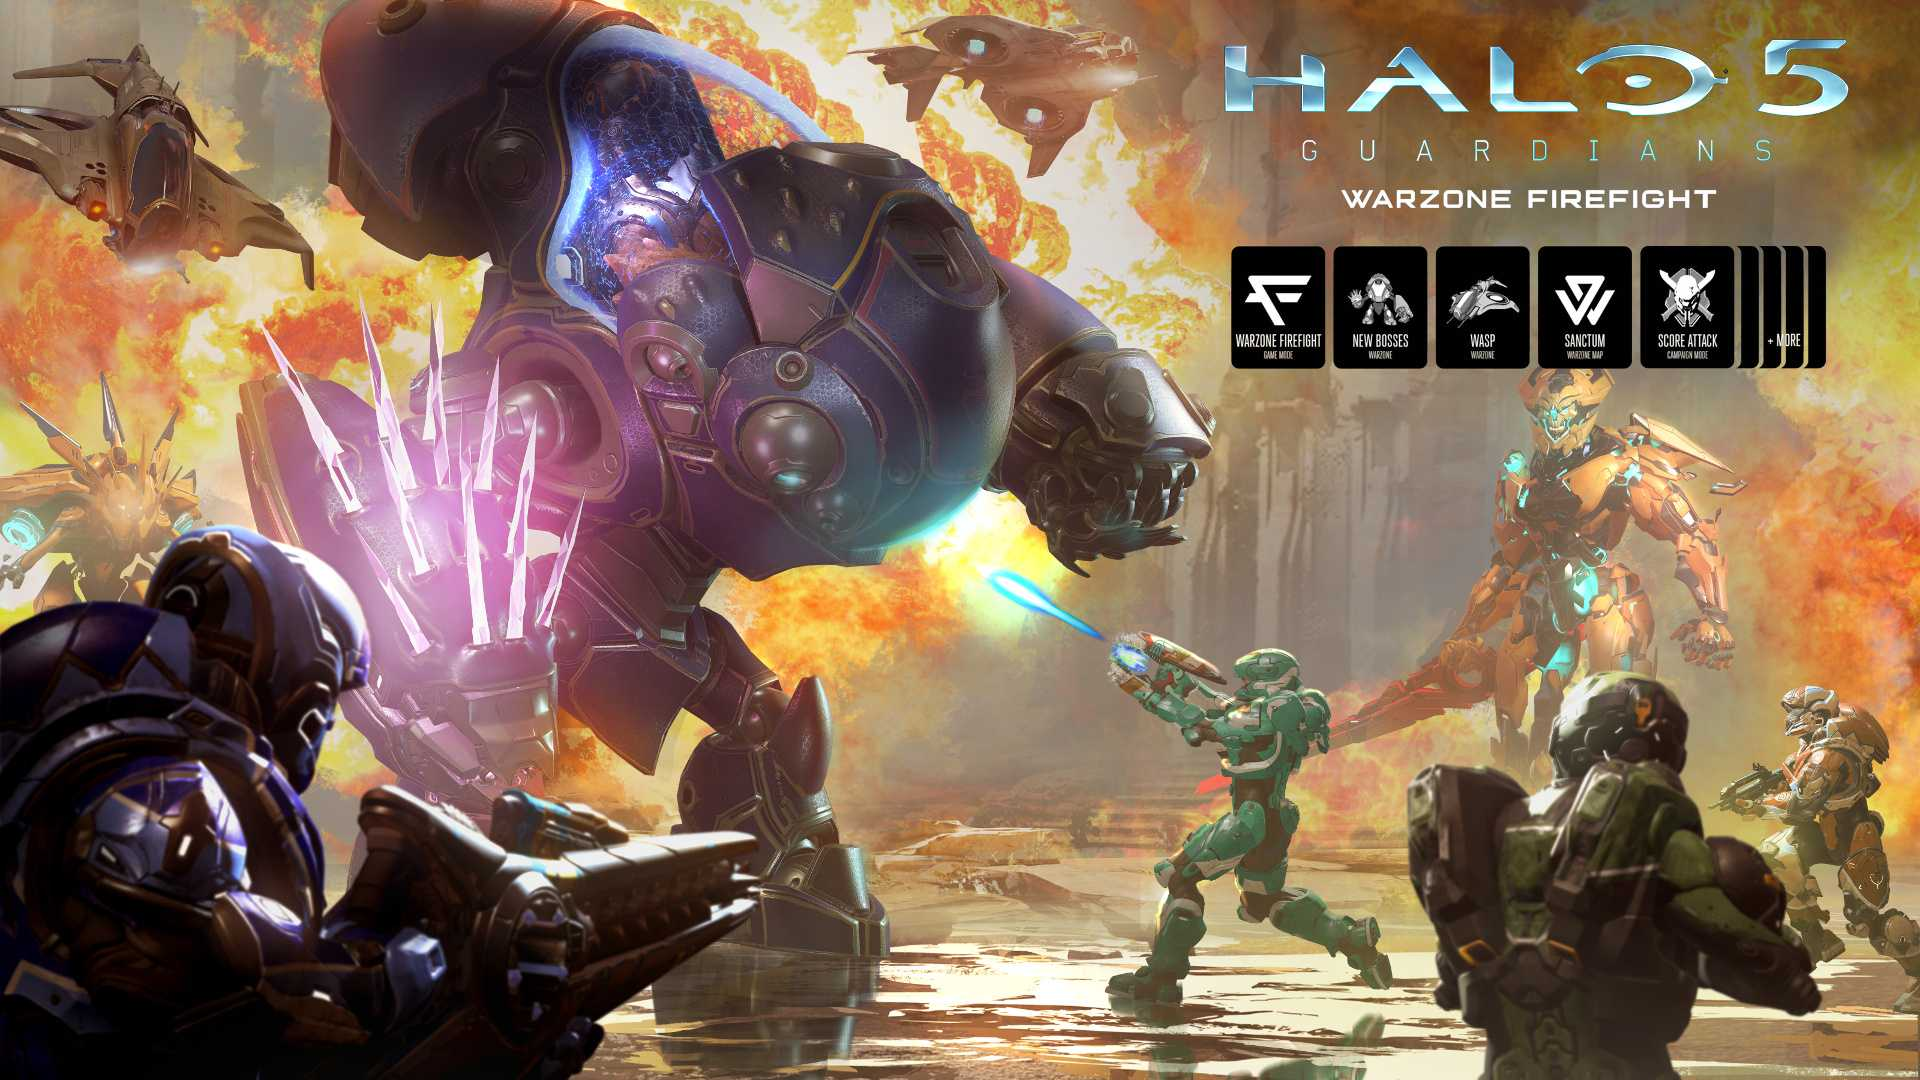 Halo 5 Gets Warzone Firefight Next Week, Game Goes Free For Limited Time